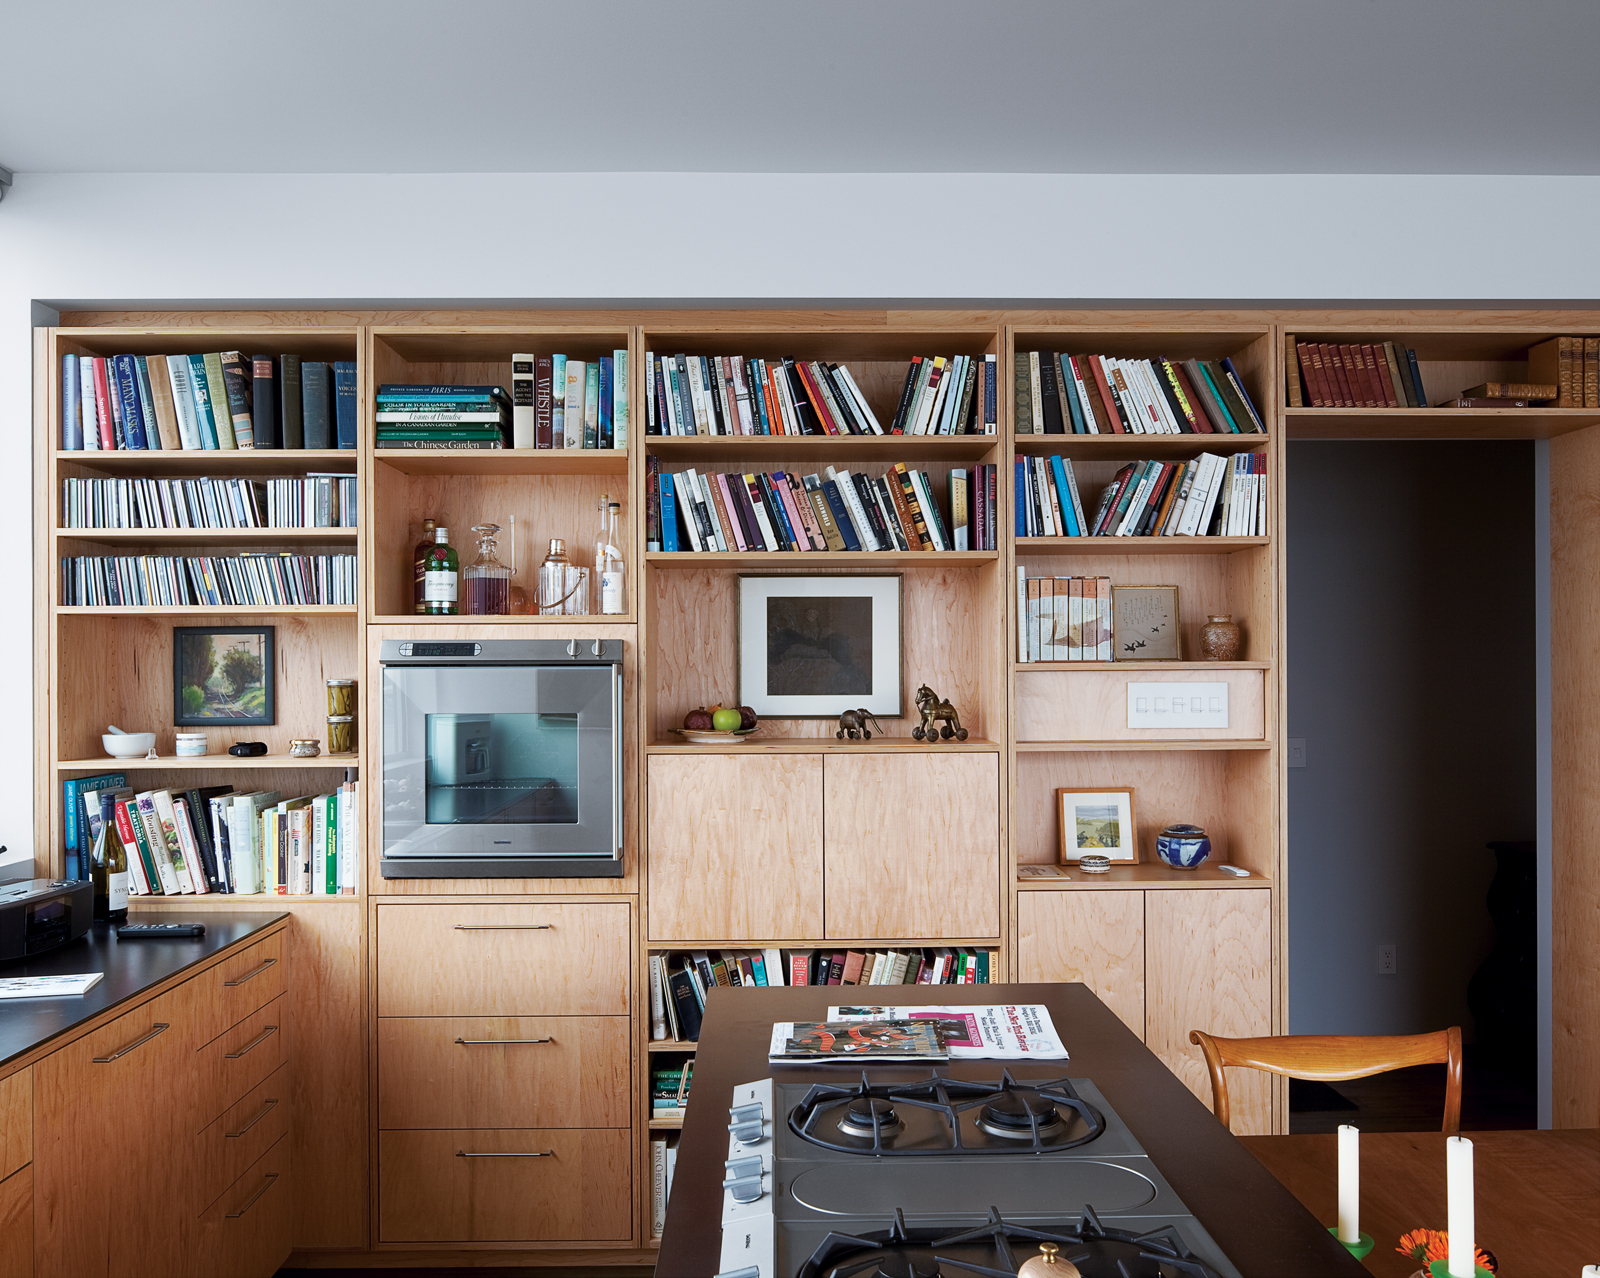 His Gaggenau oven and range, set into an oiled-steel counter, help heat things up in his kitchen.